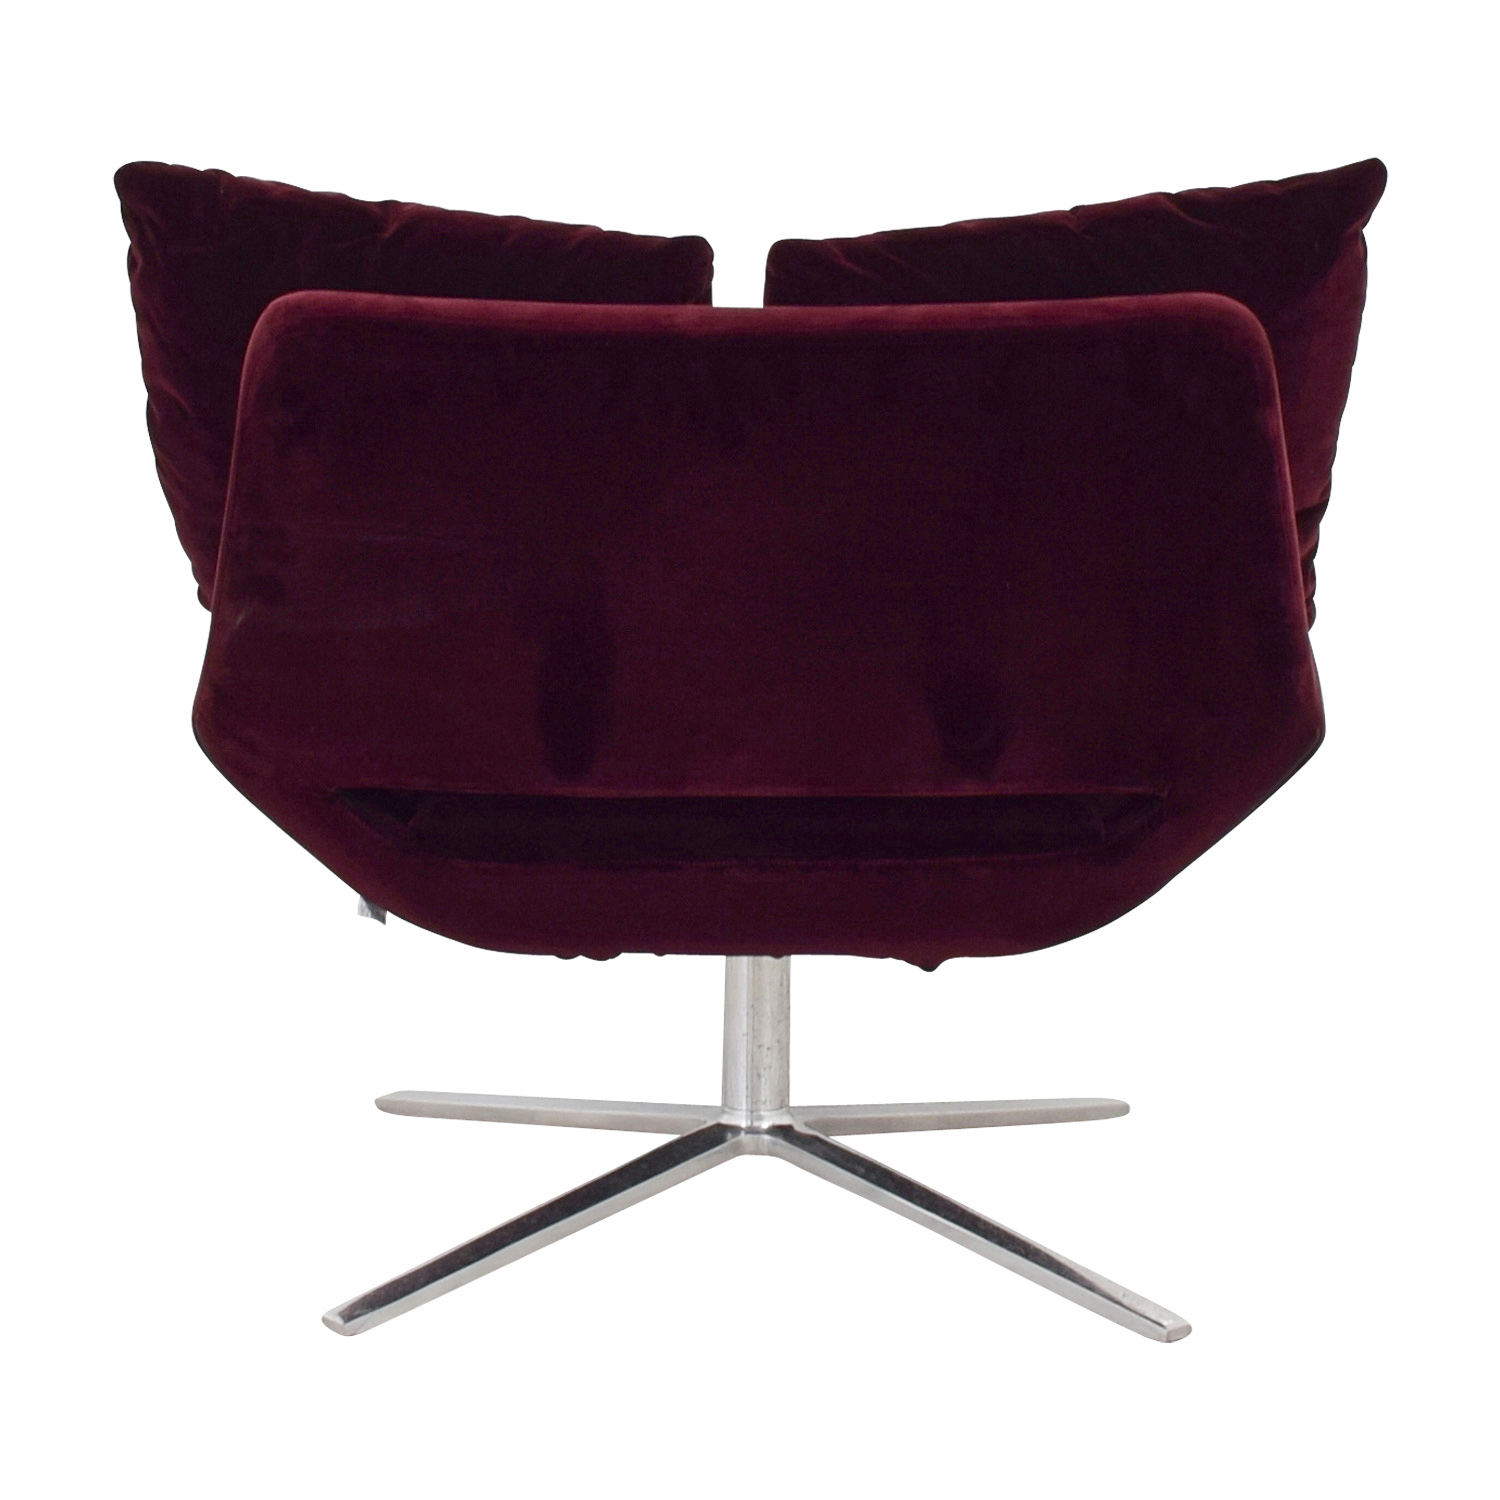 Ligne Roset Ligne Roset Burgundy Velvet Swivel Chair